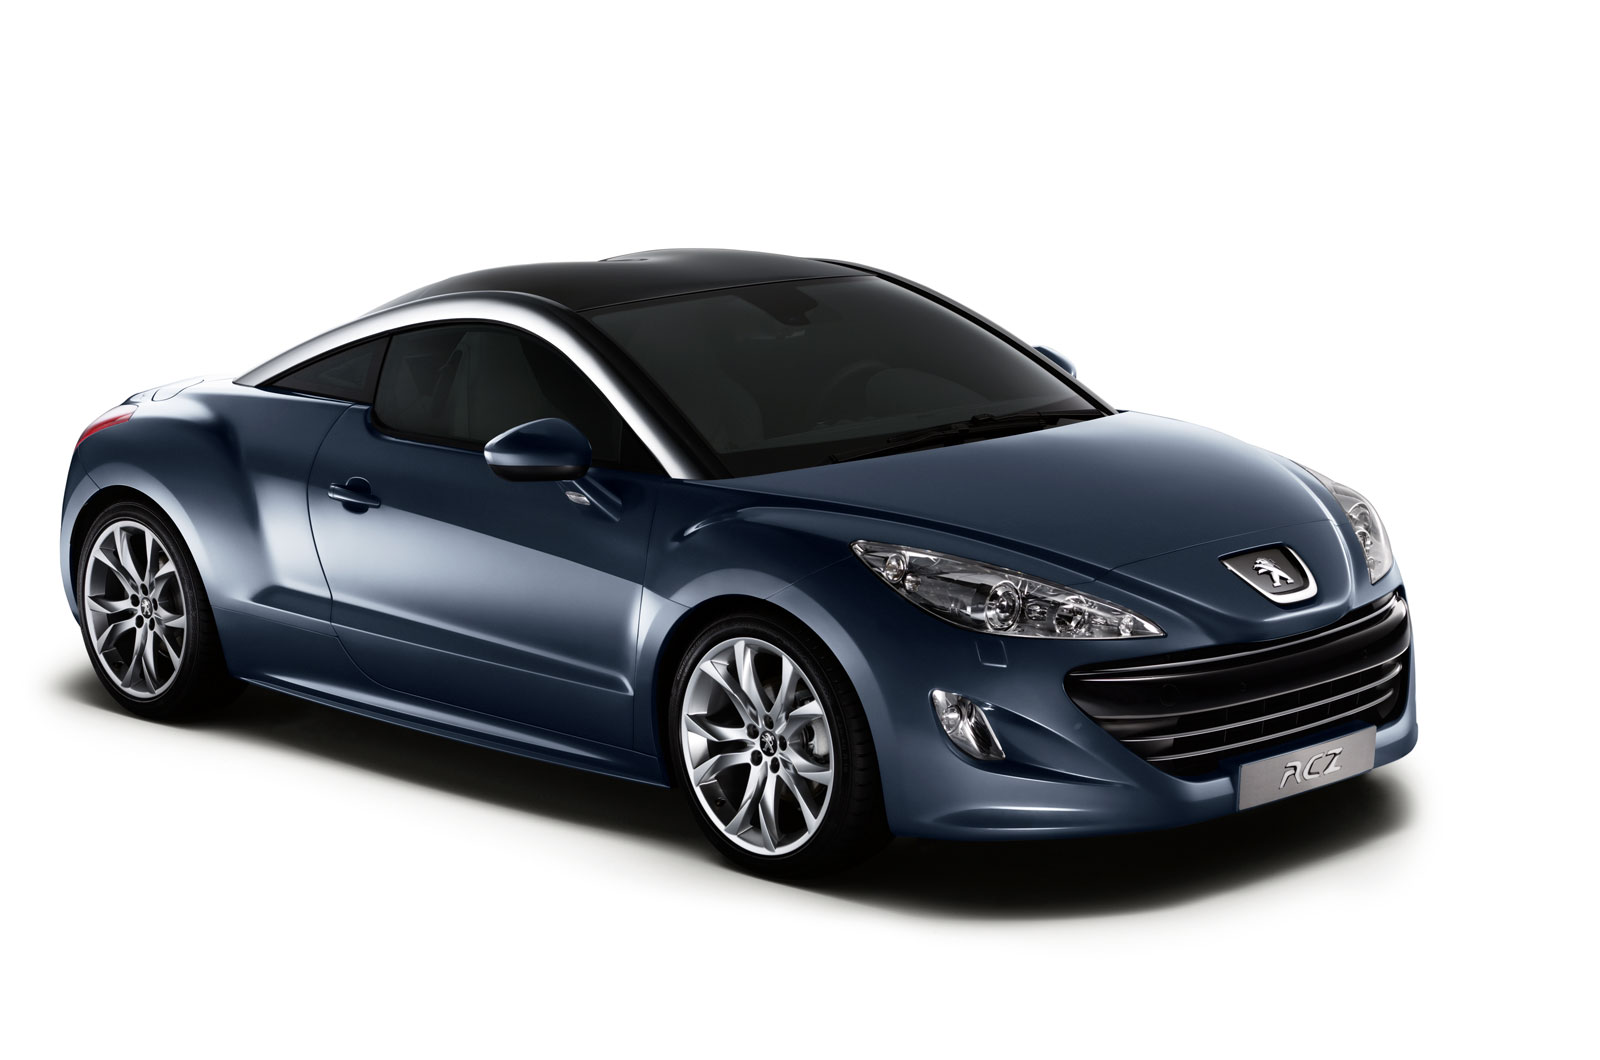 2010 Peugeot RCZ Coupe 2-door